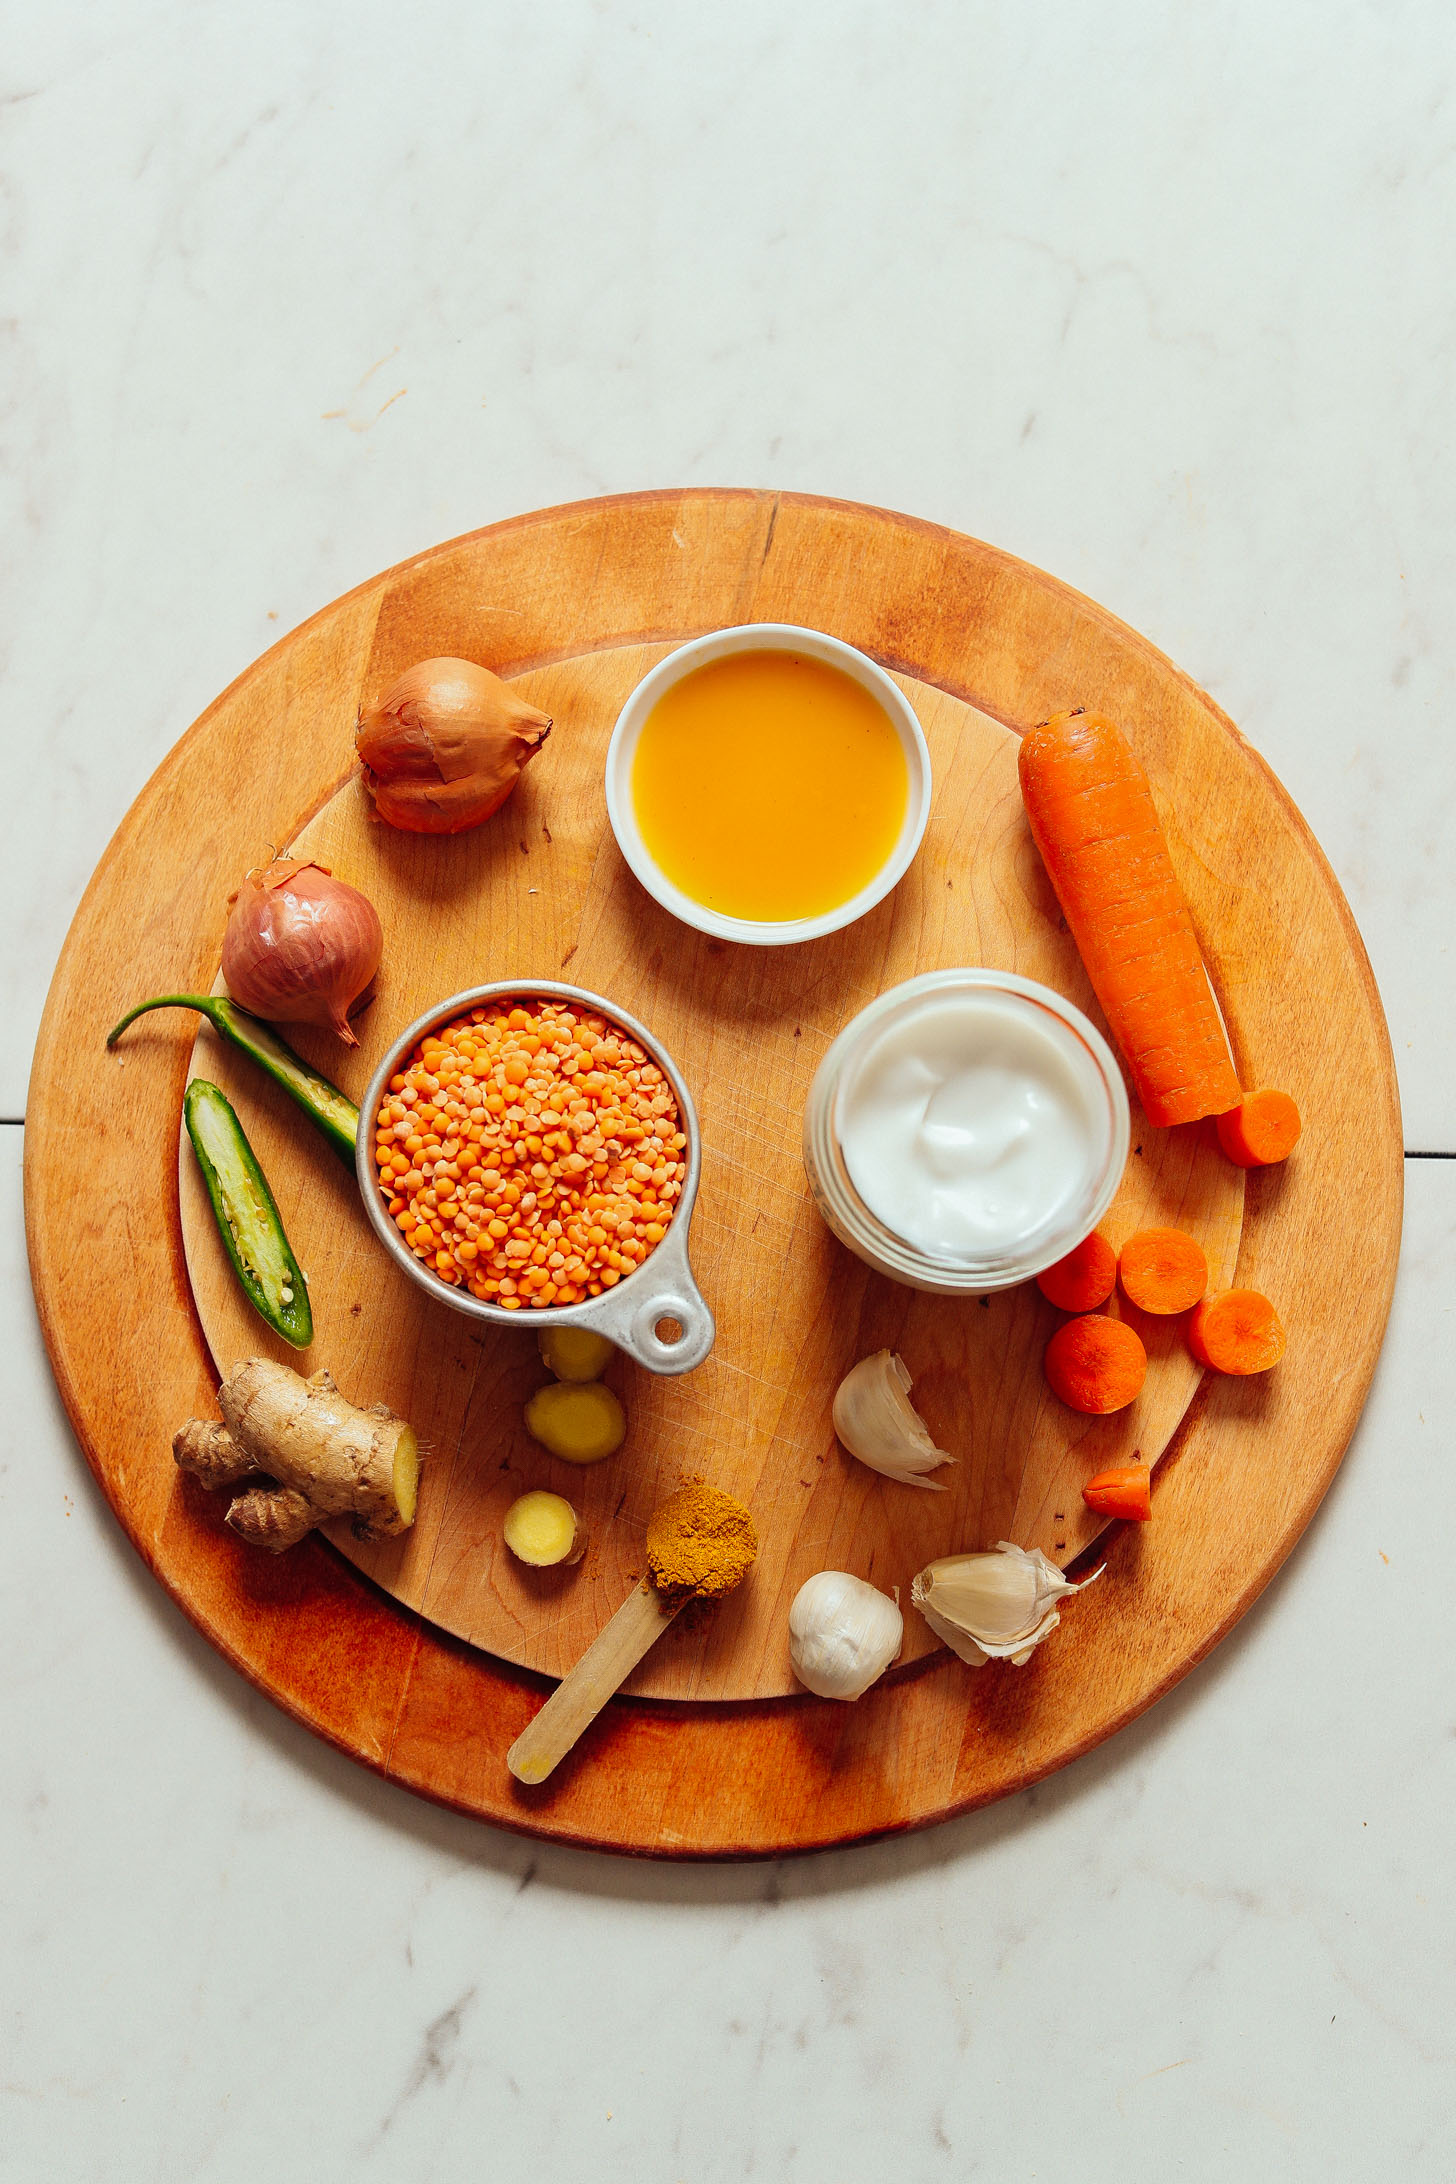 An overhead angle of the spices, vegetables, and ingredients required for golden curry lentil soup